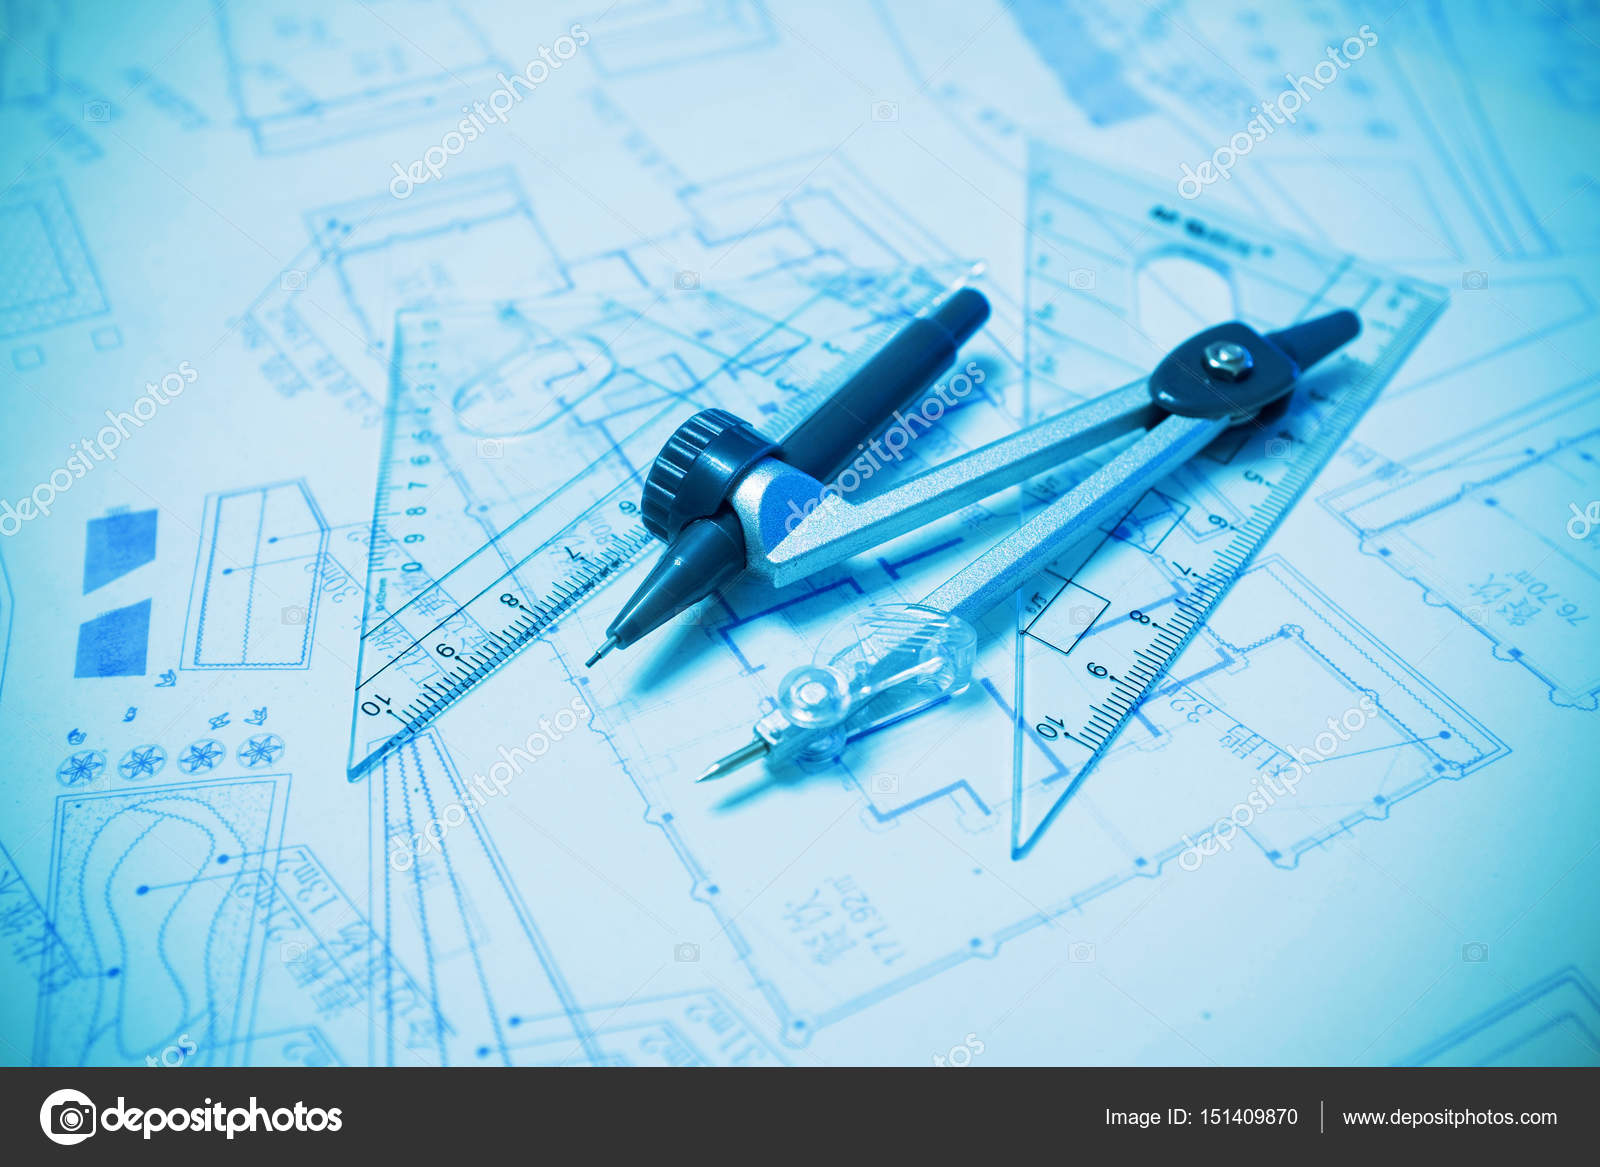 Construction planning and drawing tools background blueprint construction planning and drawing tools background blueprint foto de dpp2012 malvernweather Image collections